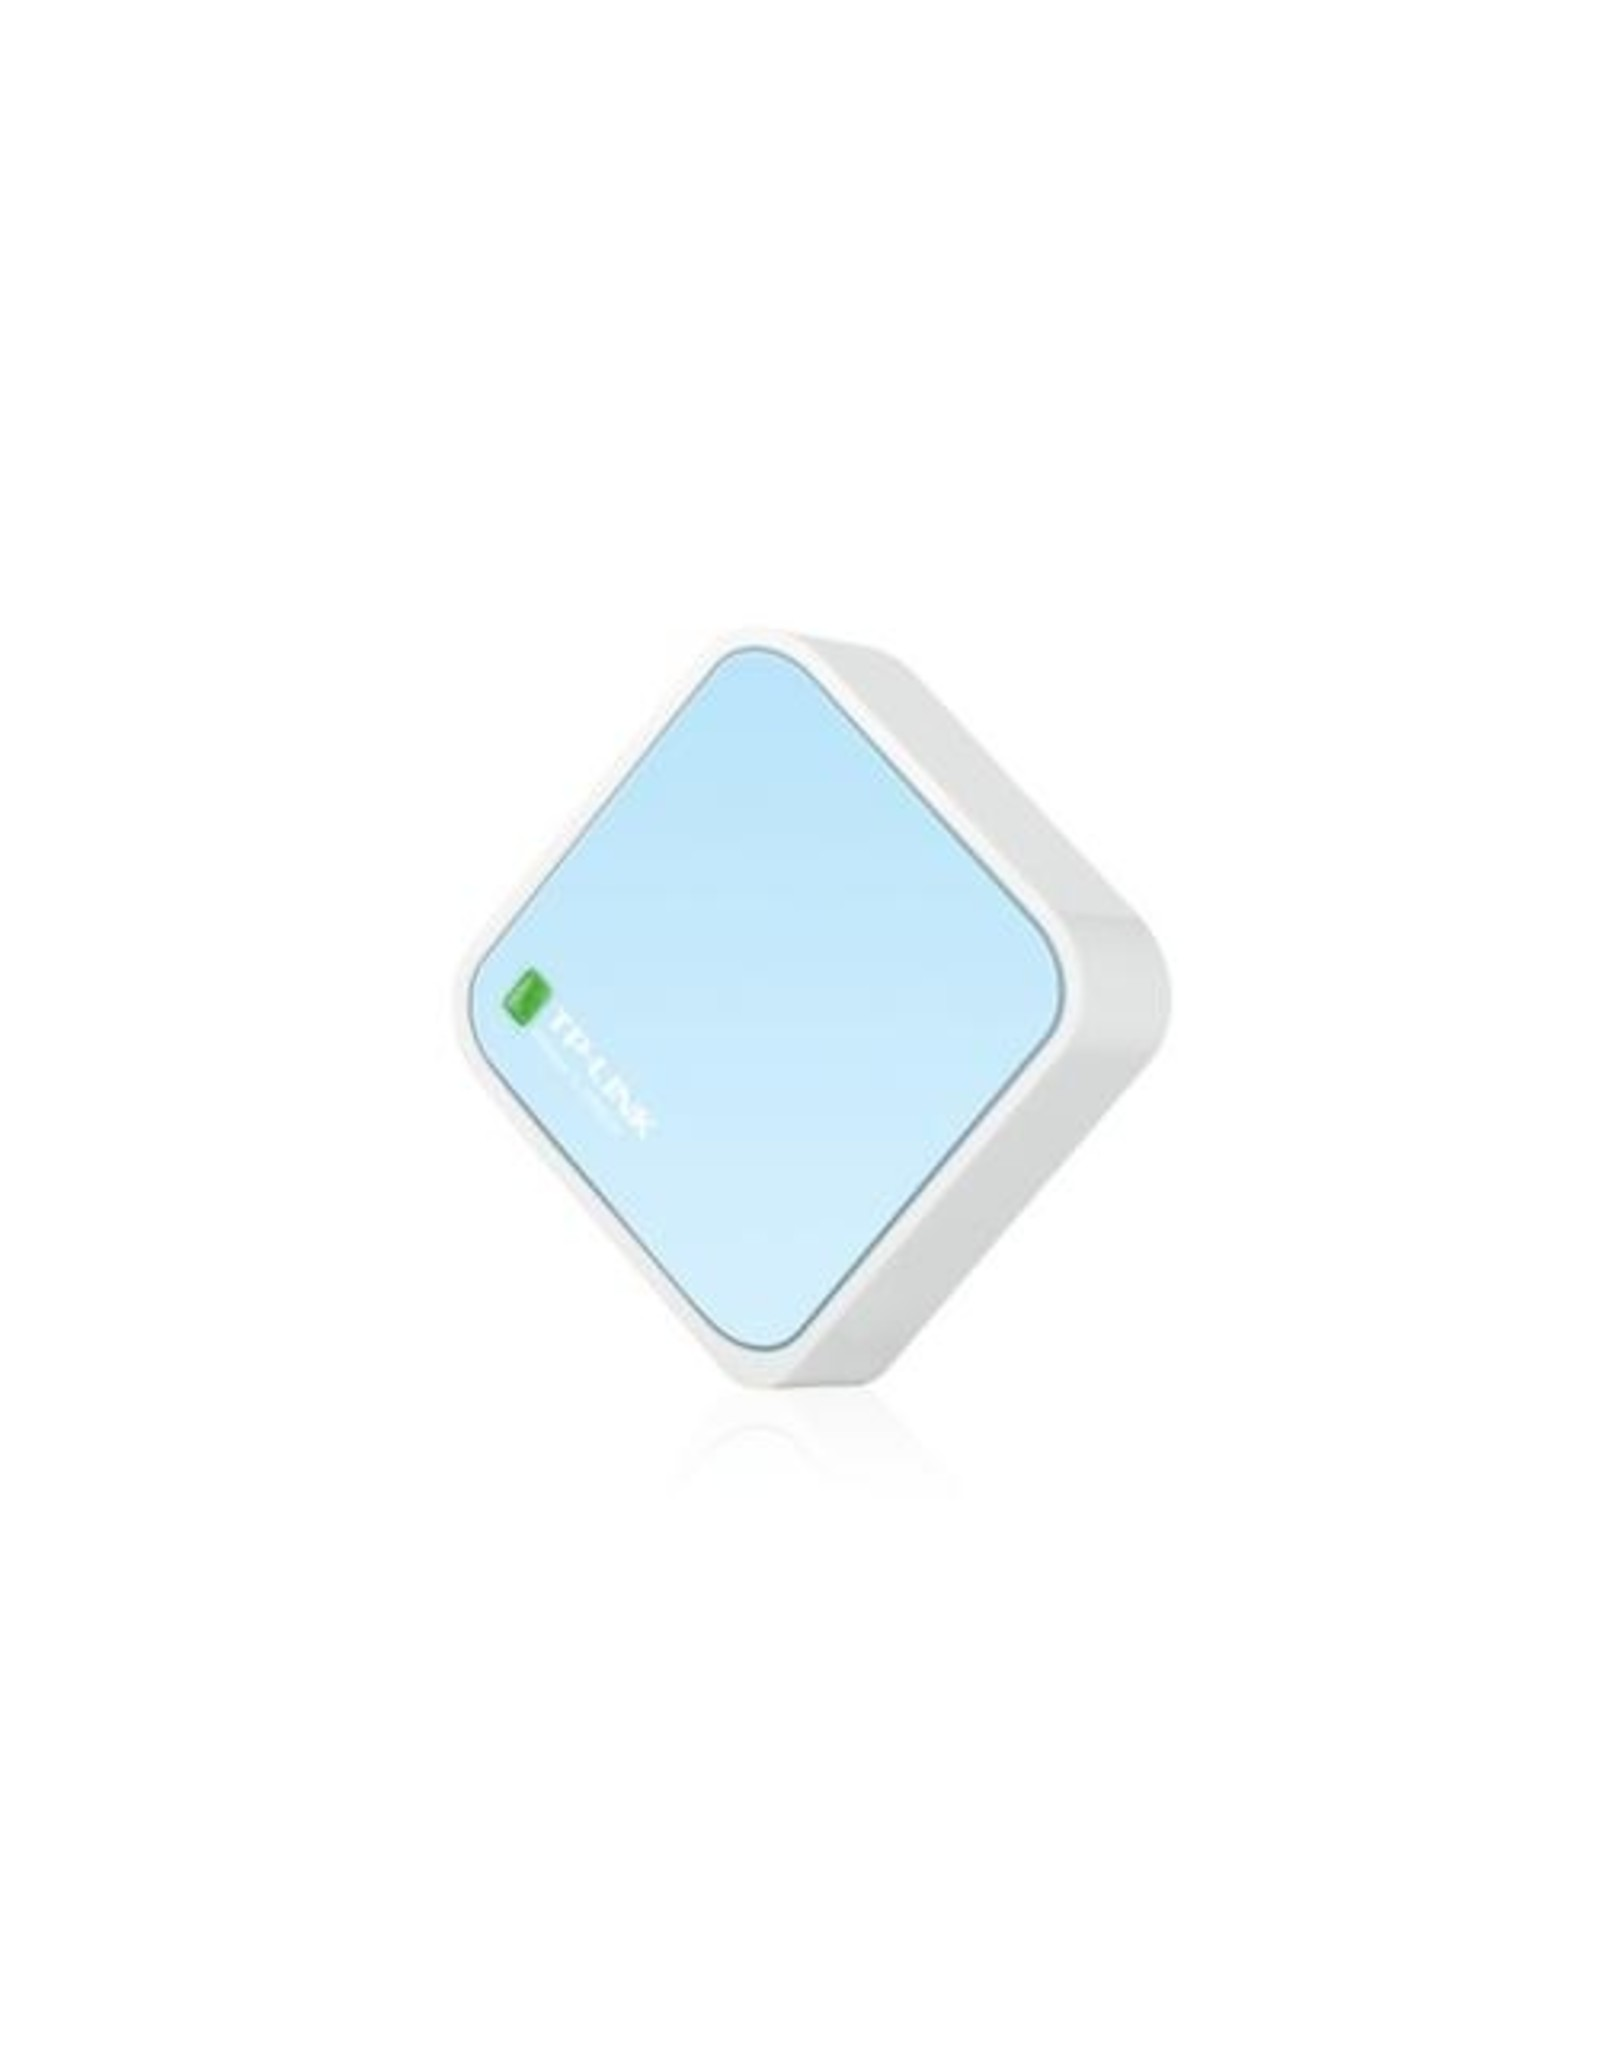 TP-Link Wireless N Nano 300Mbps Router